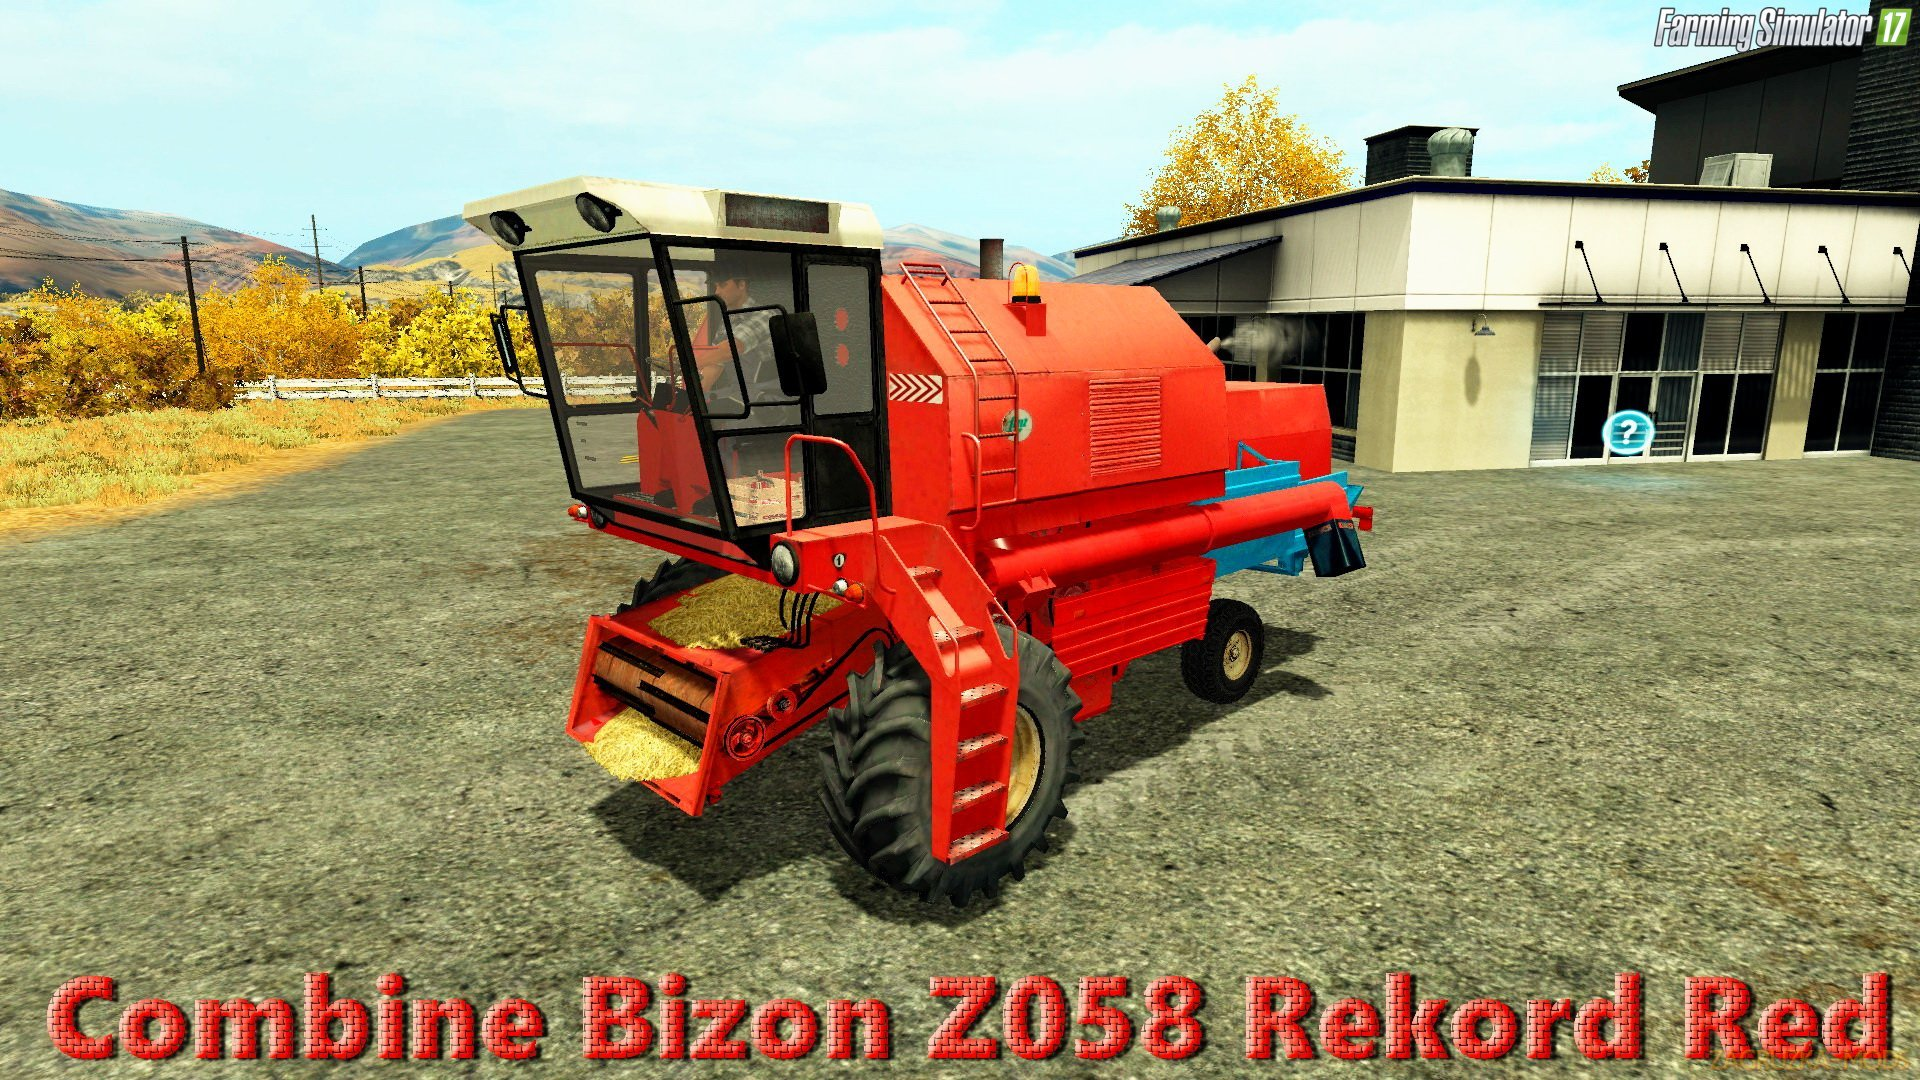 Bizon Z058 Rekord Red v1.0 for FS 17